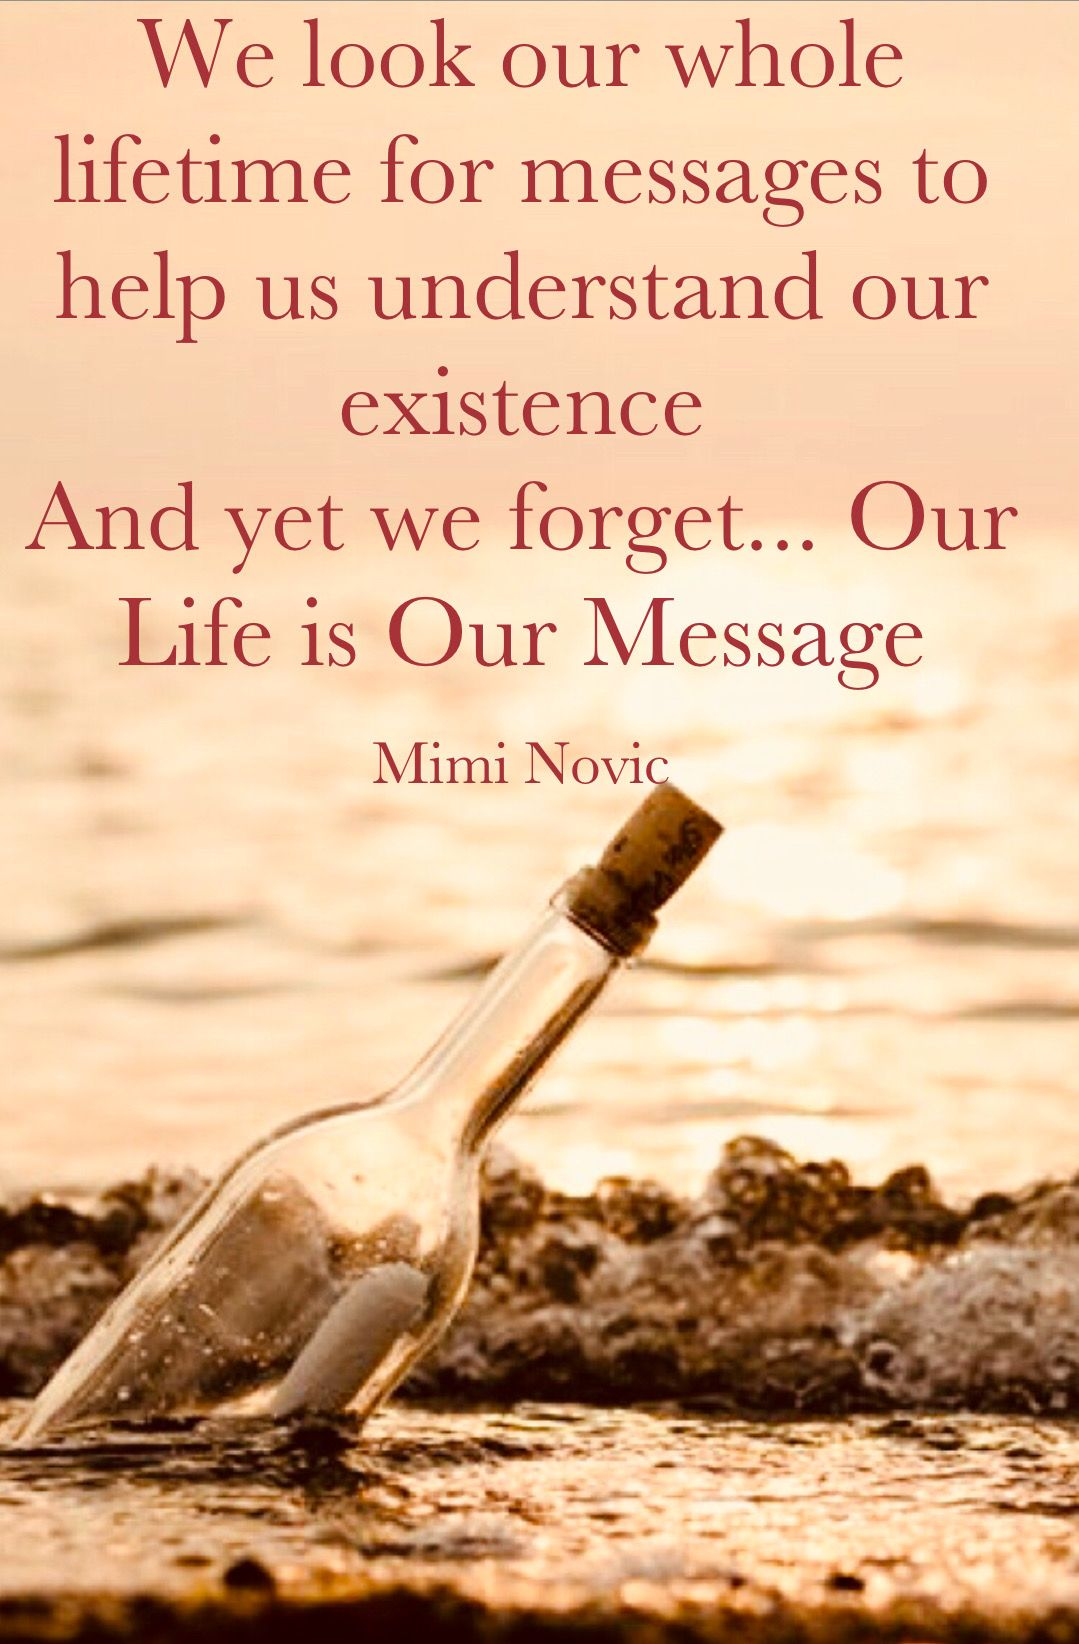 Inspirational Quotes By Mimi Novic Life Messages Hope Searching For Answers Miracles Faith Aspiration Beau Inspirational Quotes Love Your Life Spiritual Quotes